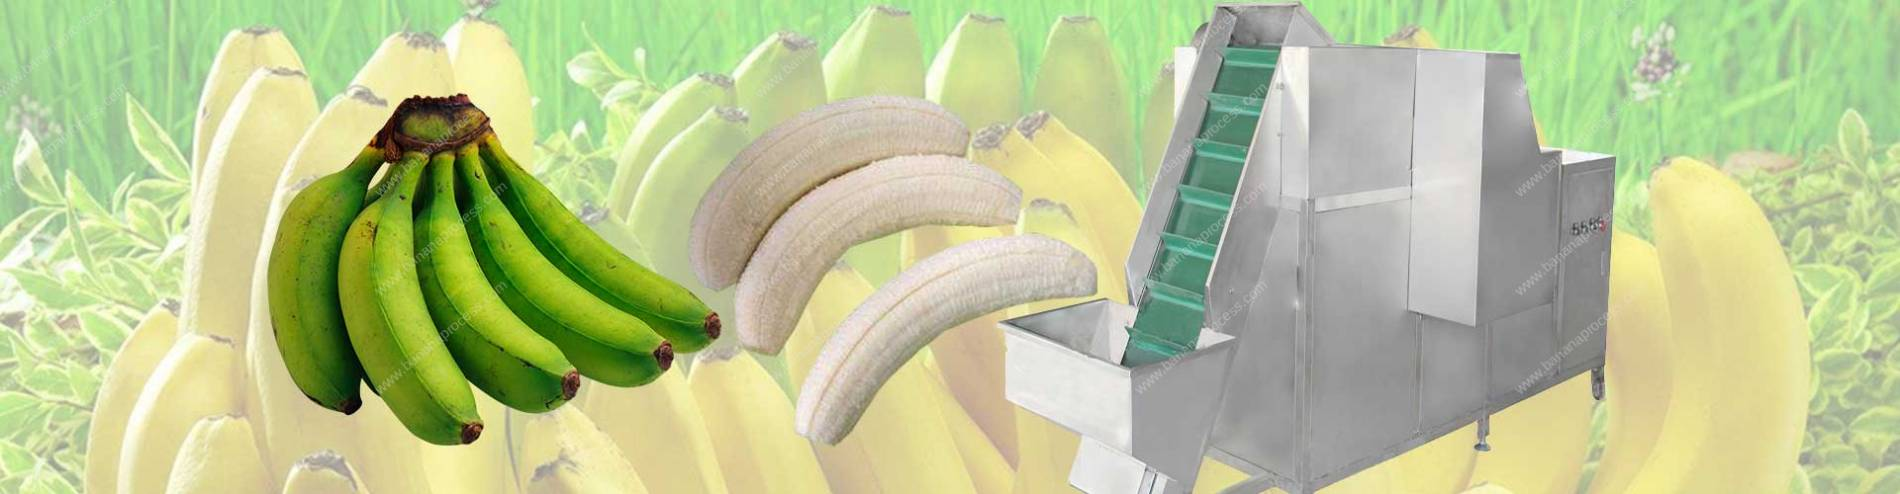 Banner04-Automatic-Feeding-Green-Unripe-Banana-Peeling-Machine-for-Sale